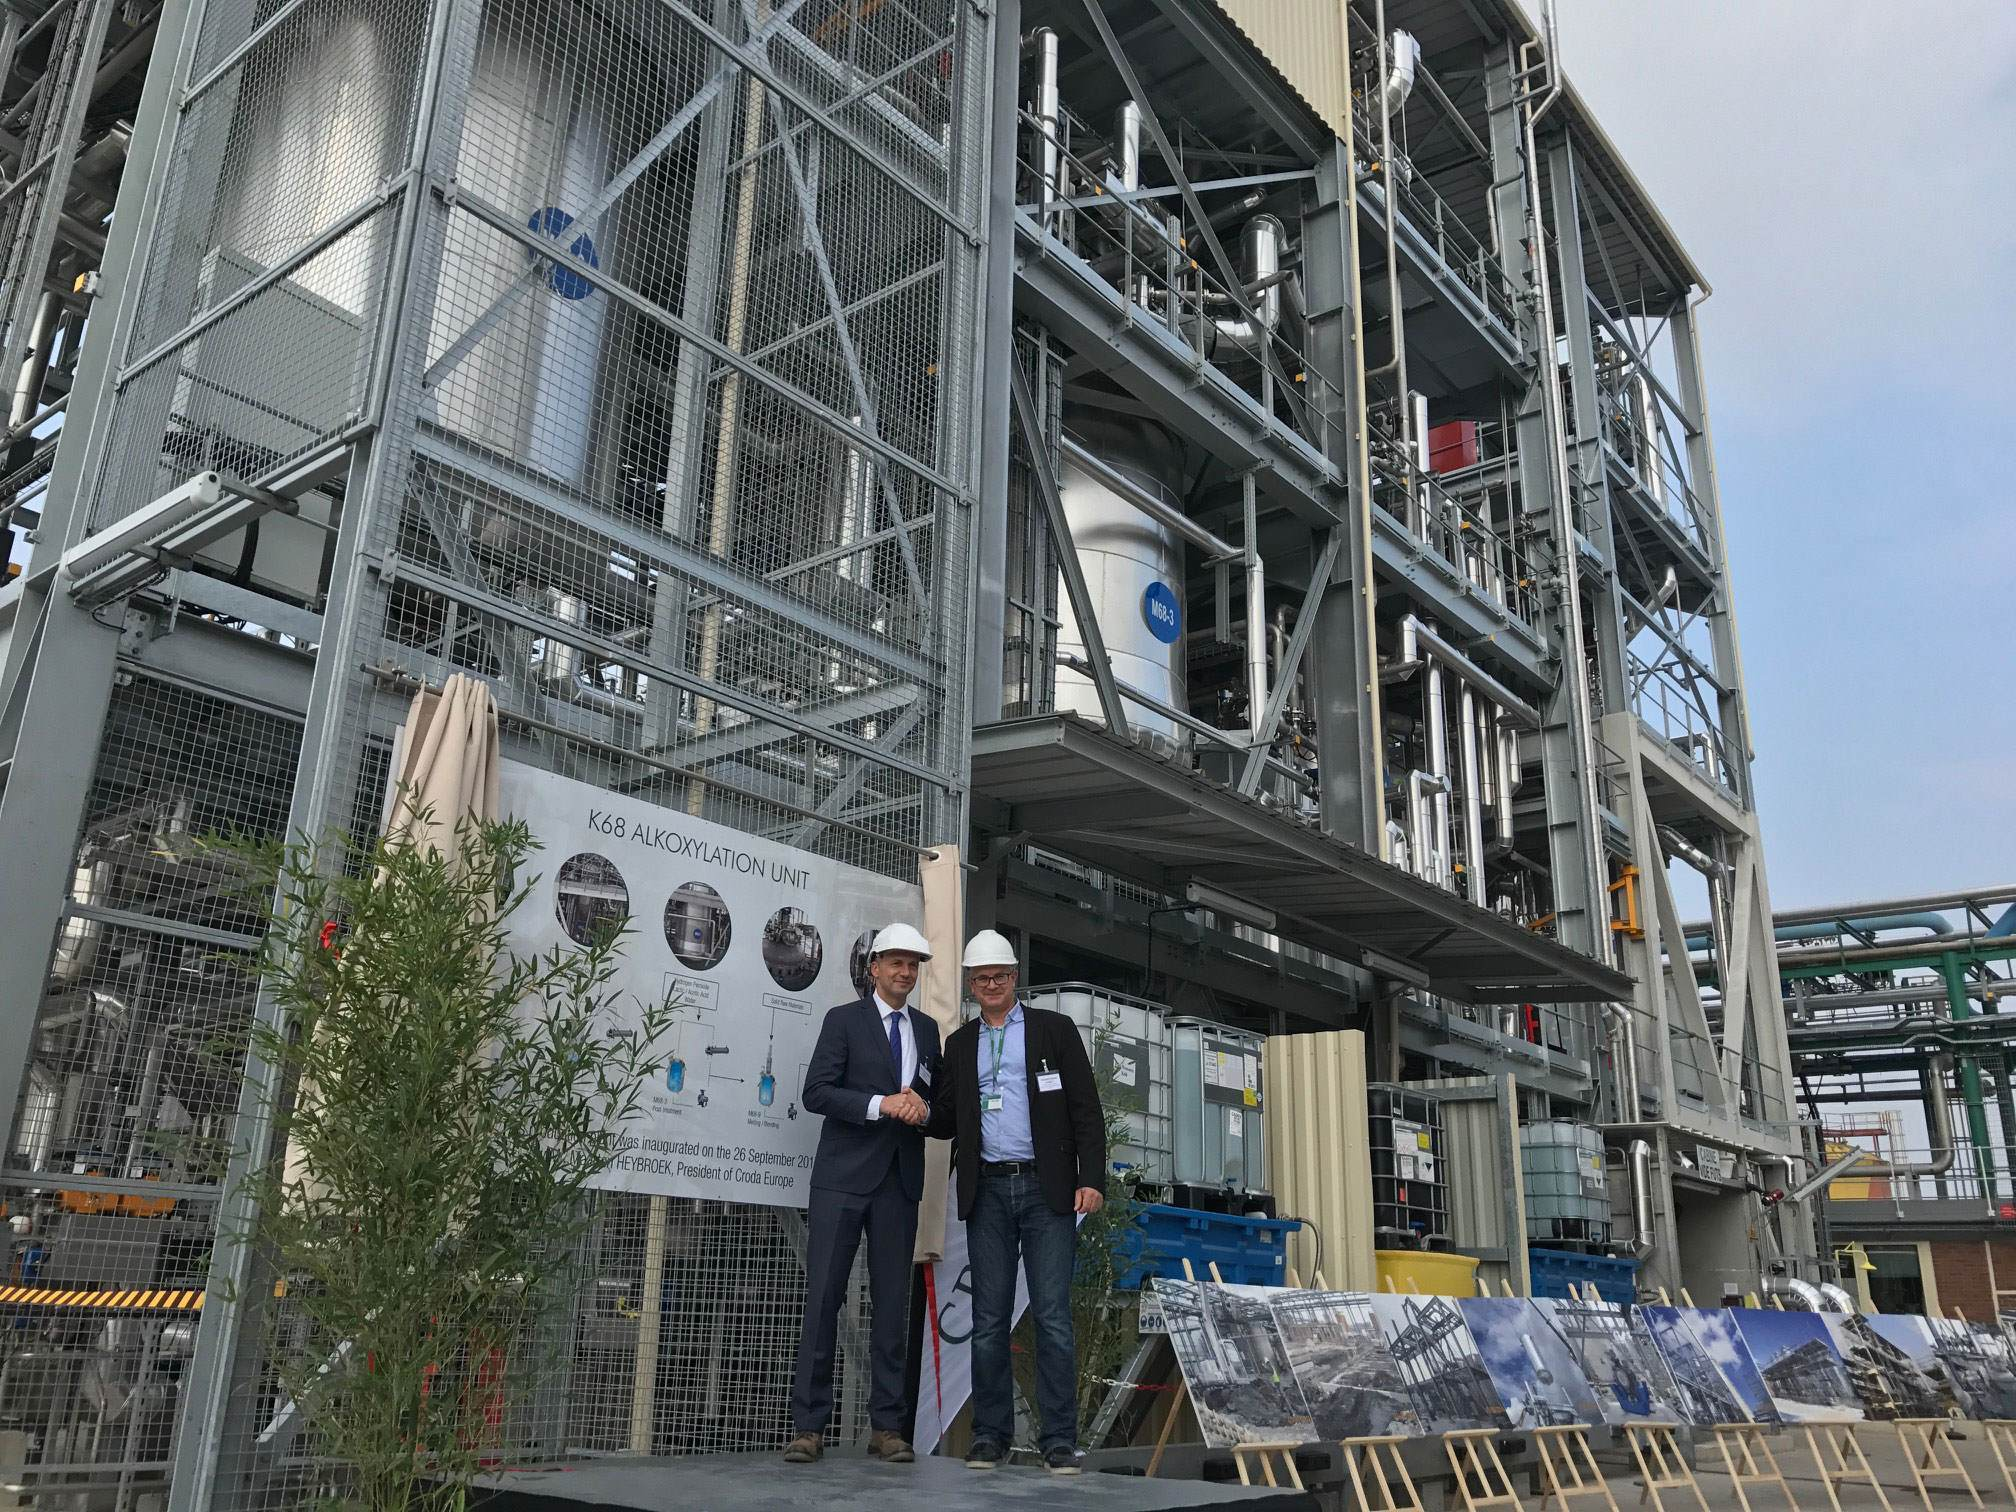 Croda's K68 Alkoxylation Manufacturing Site at Chocques, France